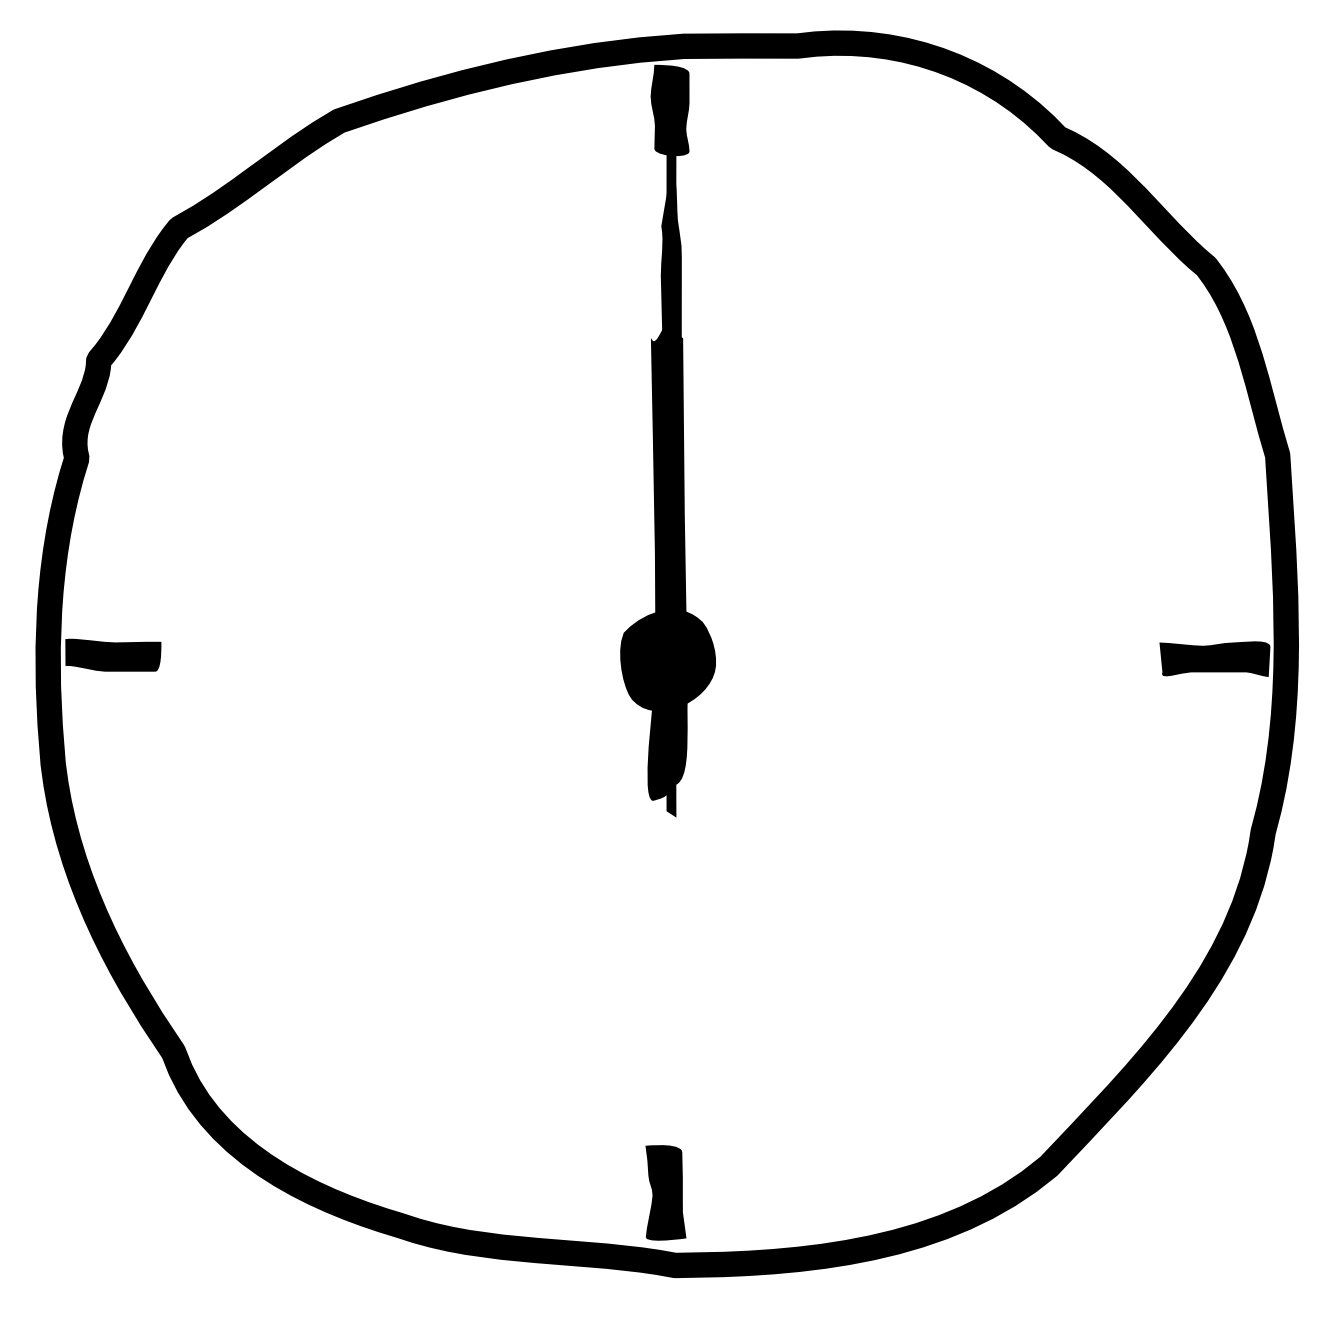 Transparent stopwatch blank. Png black and